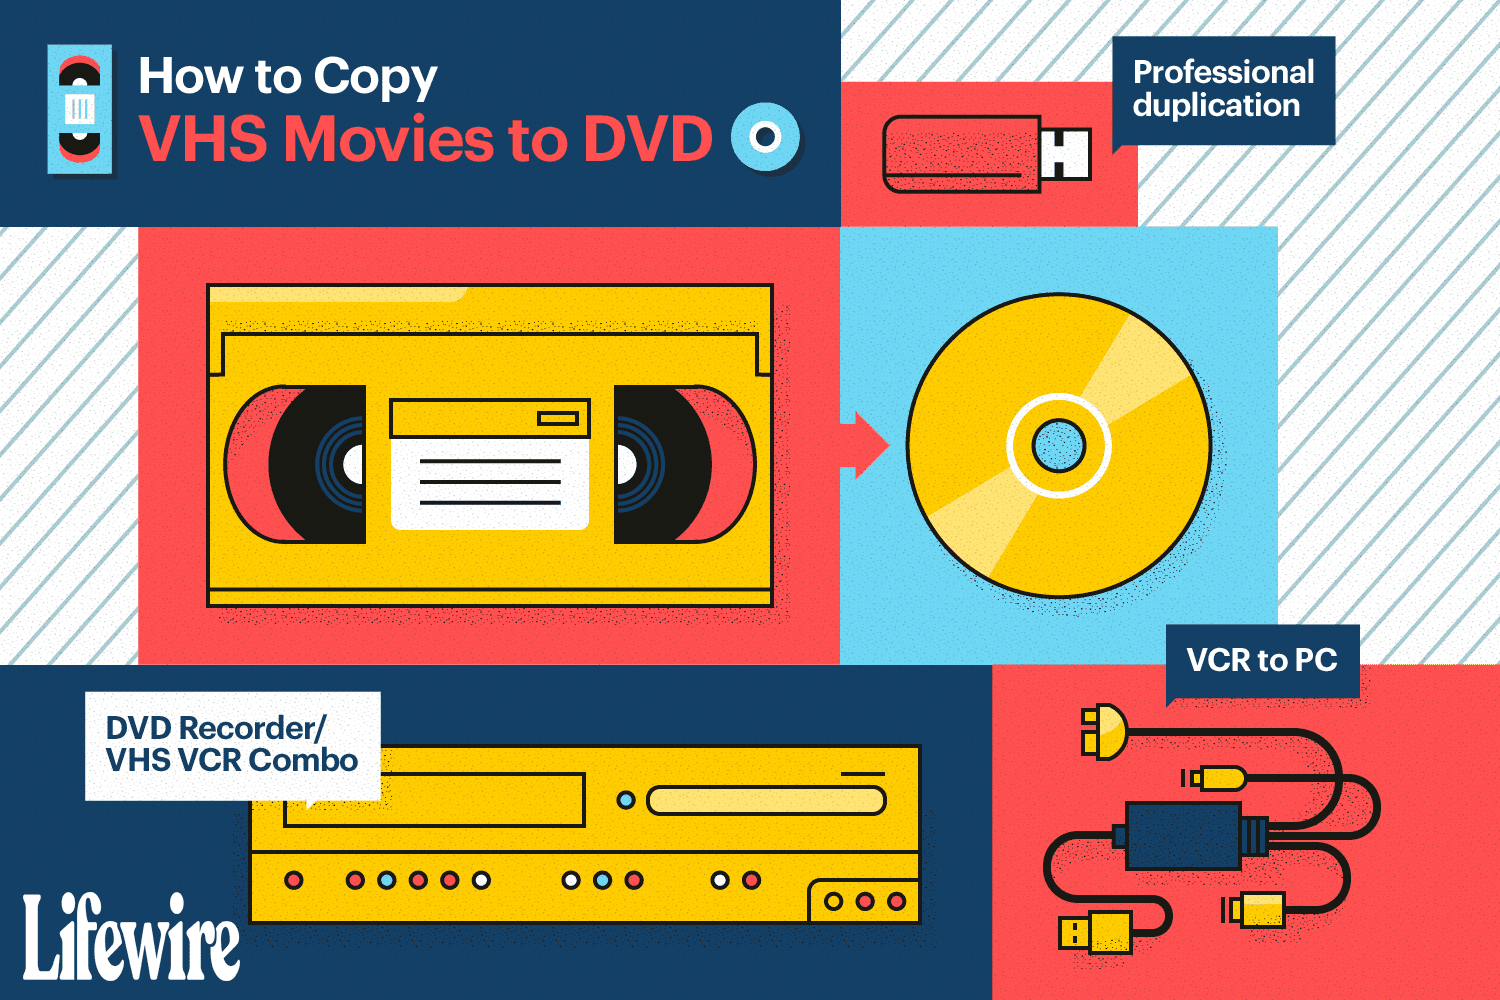 An illustration of the ways to copy vhs movies to DVD.